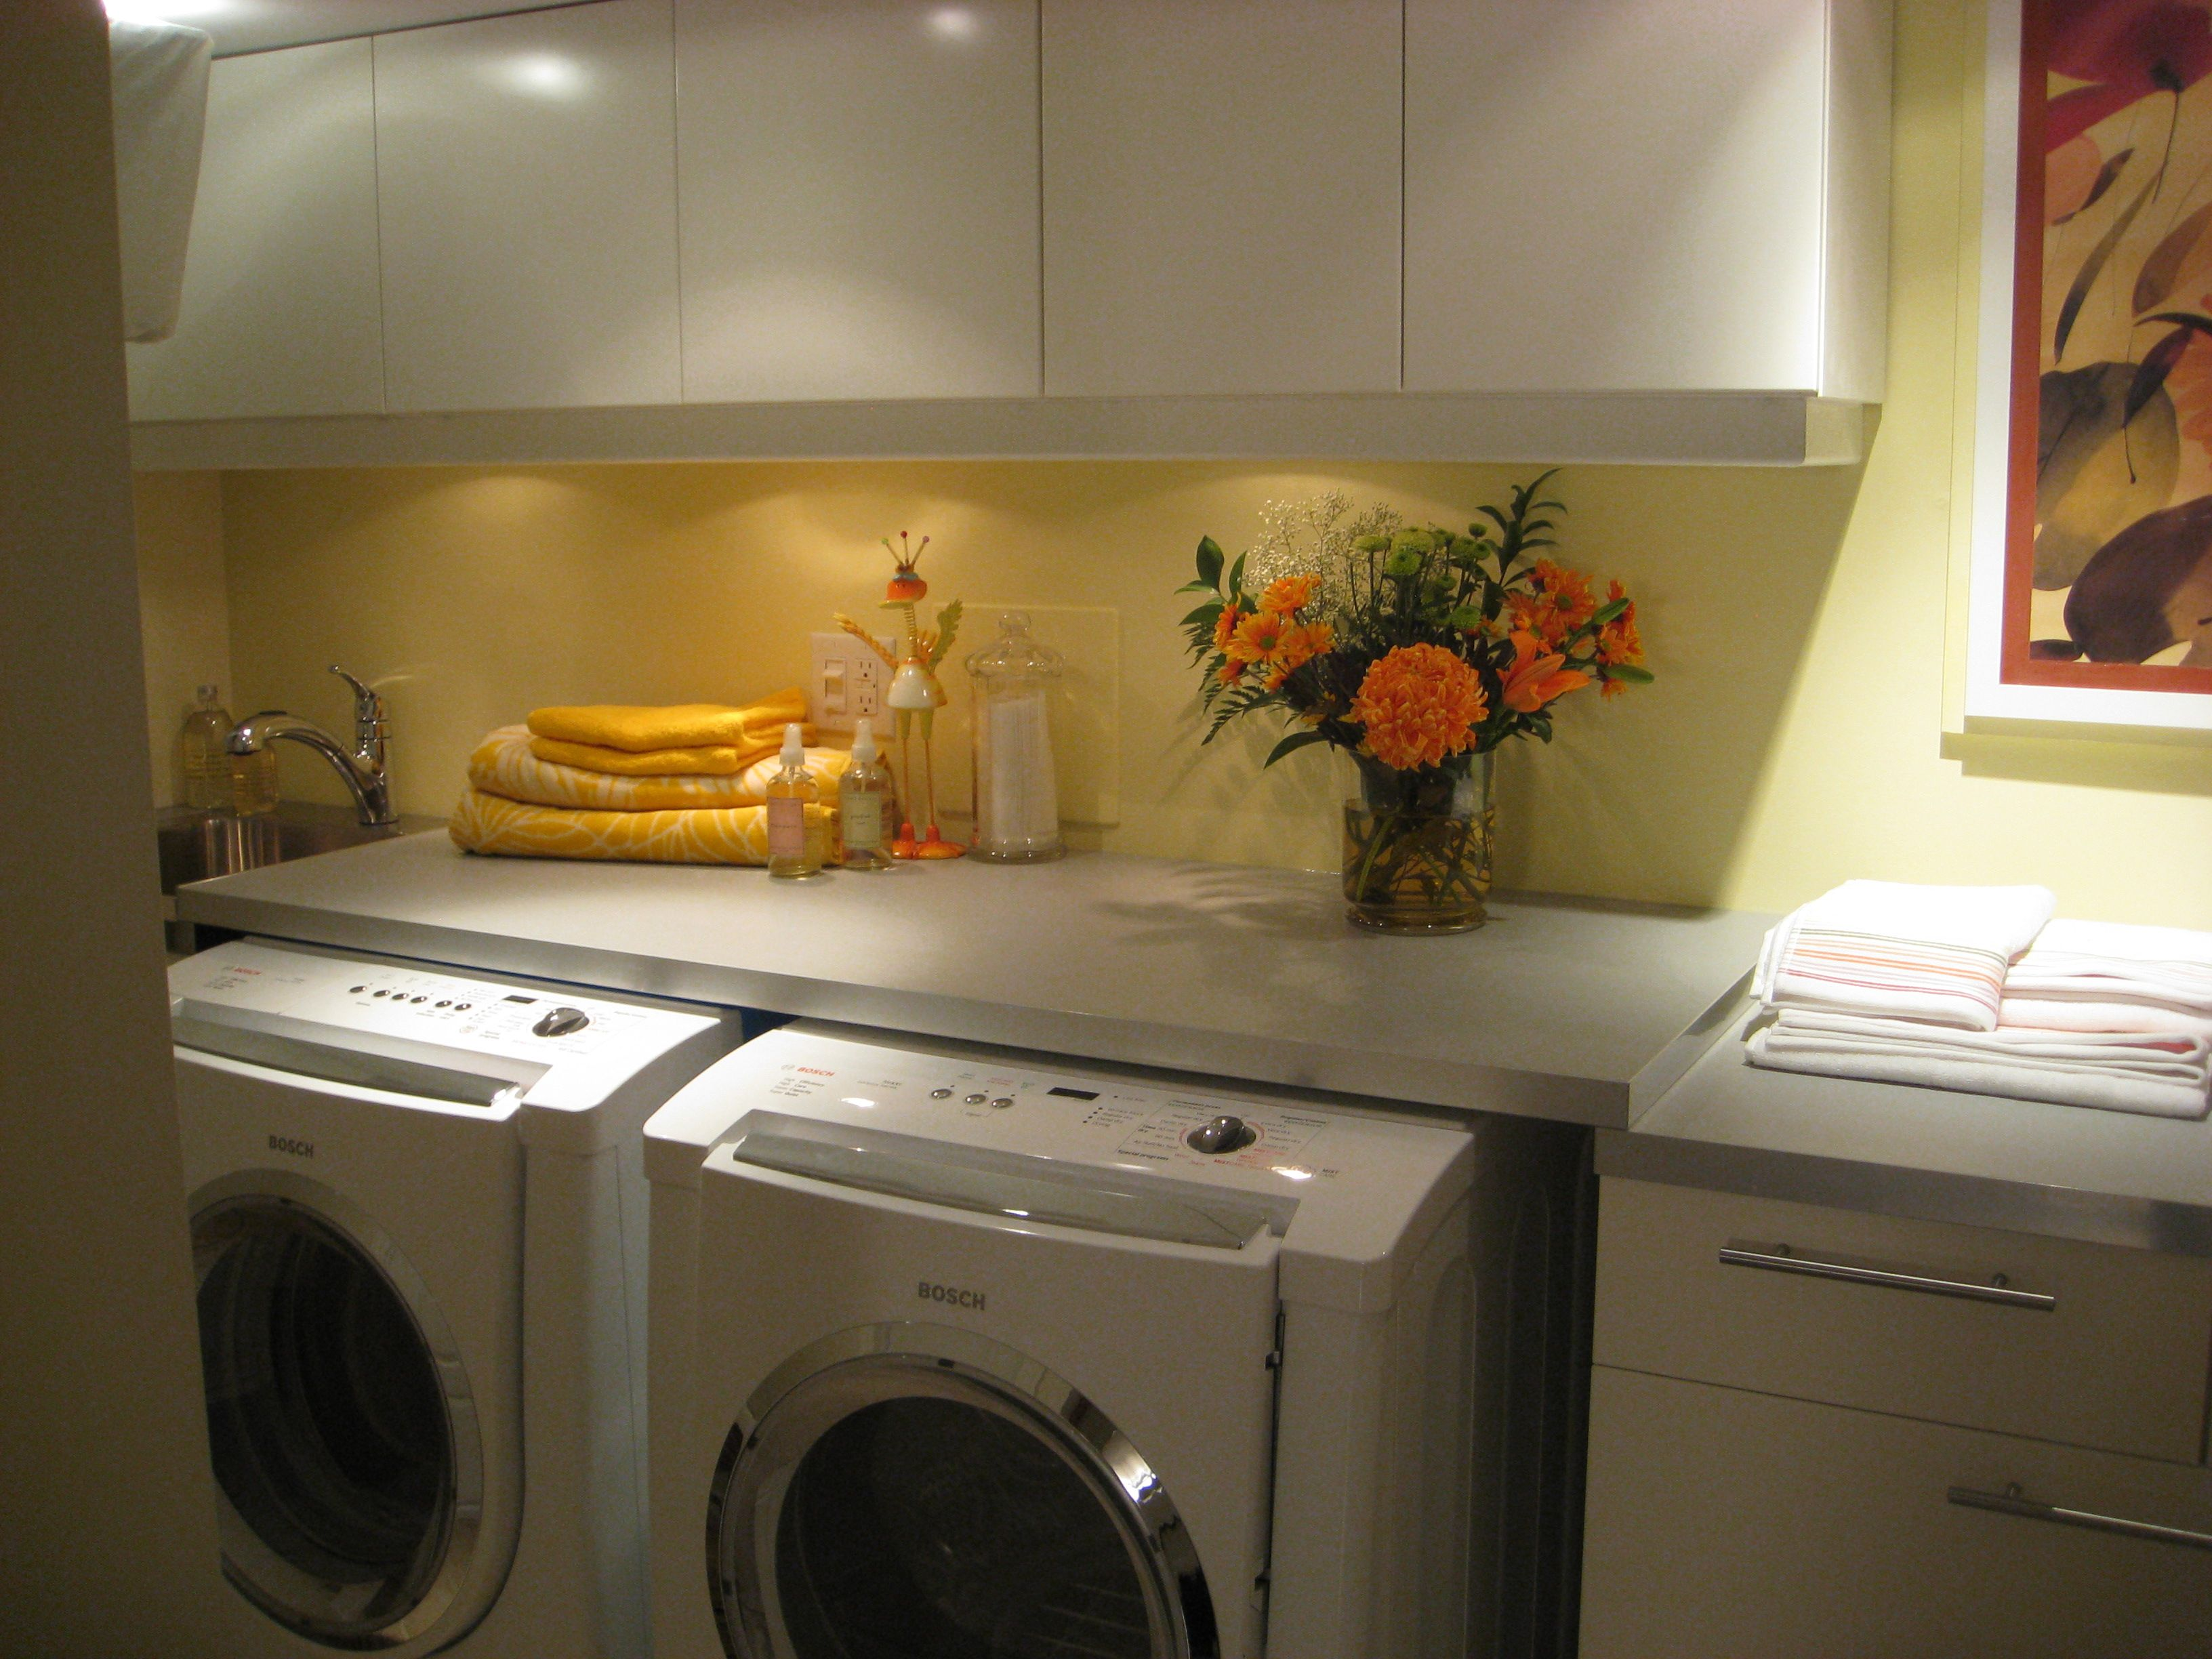 Basement Laundry Room With Vase Makeover Your Basement for Laundry Room Ideas Basement Tips & Renovation